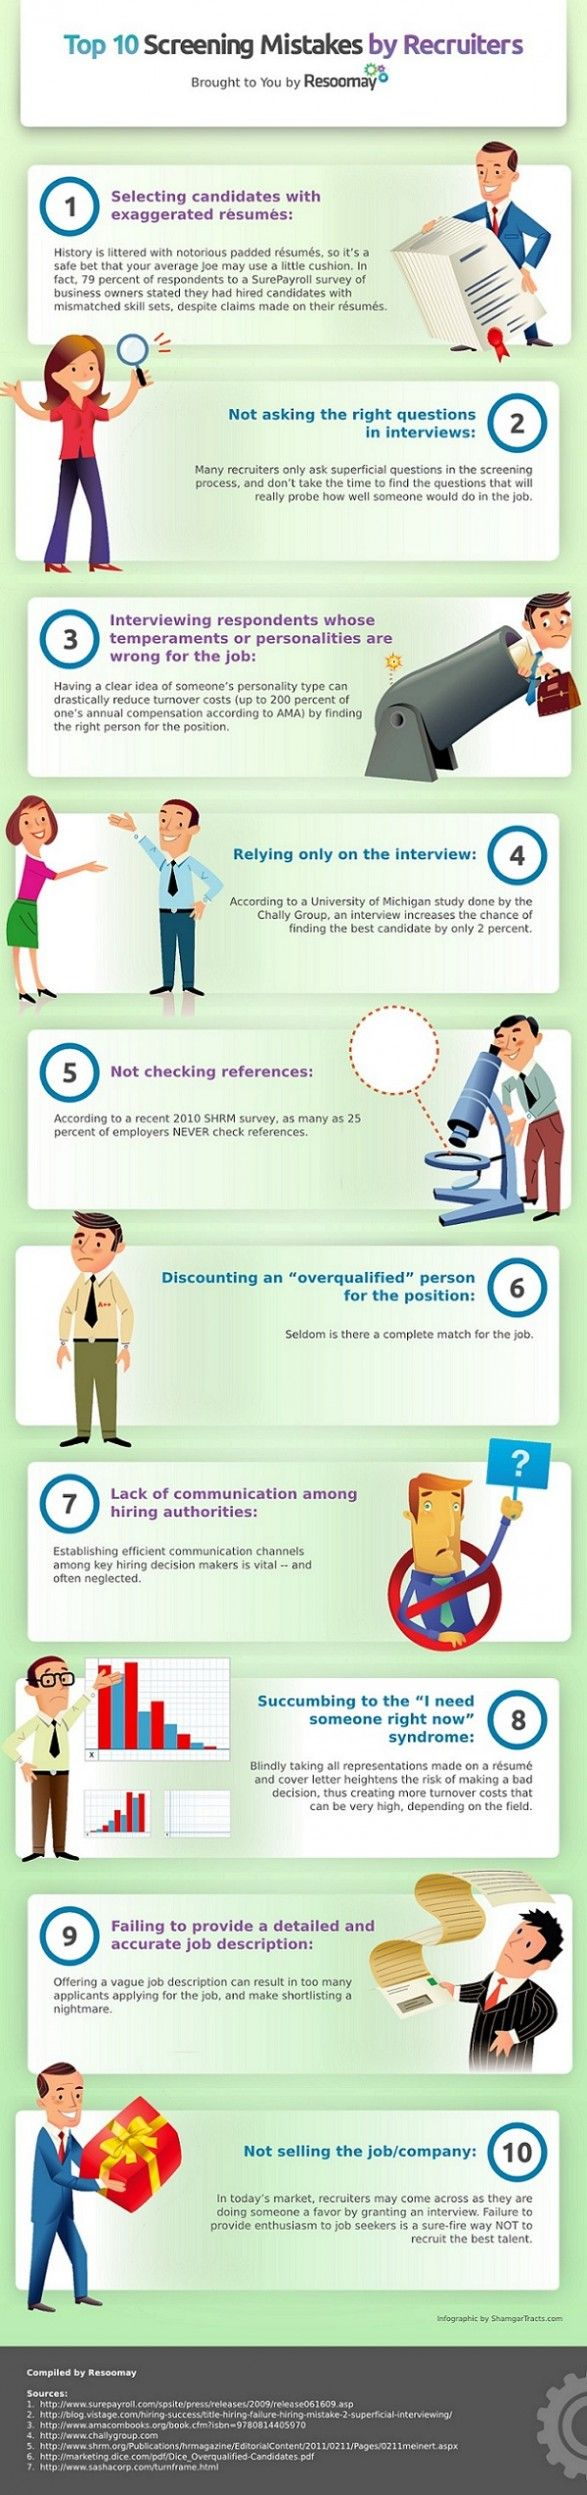 Good Reminders For Hiring Managers The Top  Recruiter Own